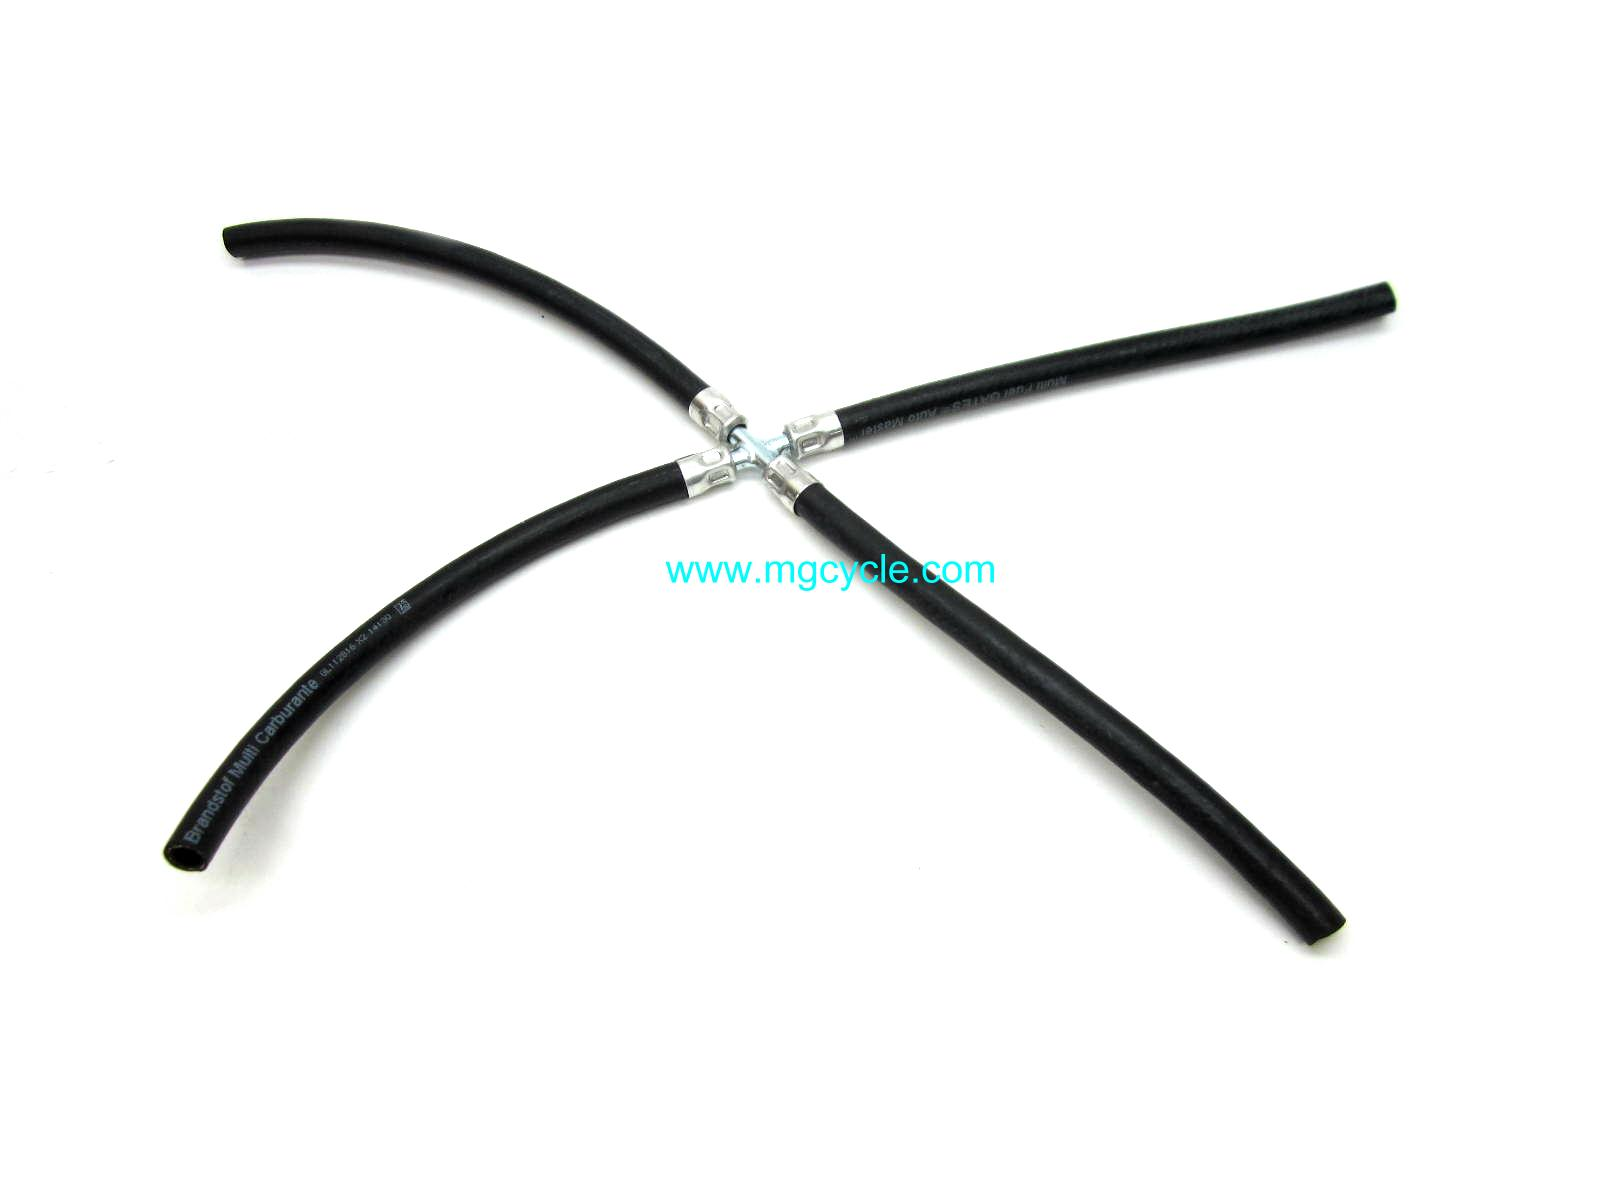 fuel hose crossover, best quality rubber hose